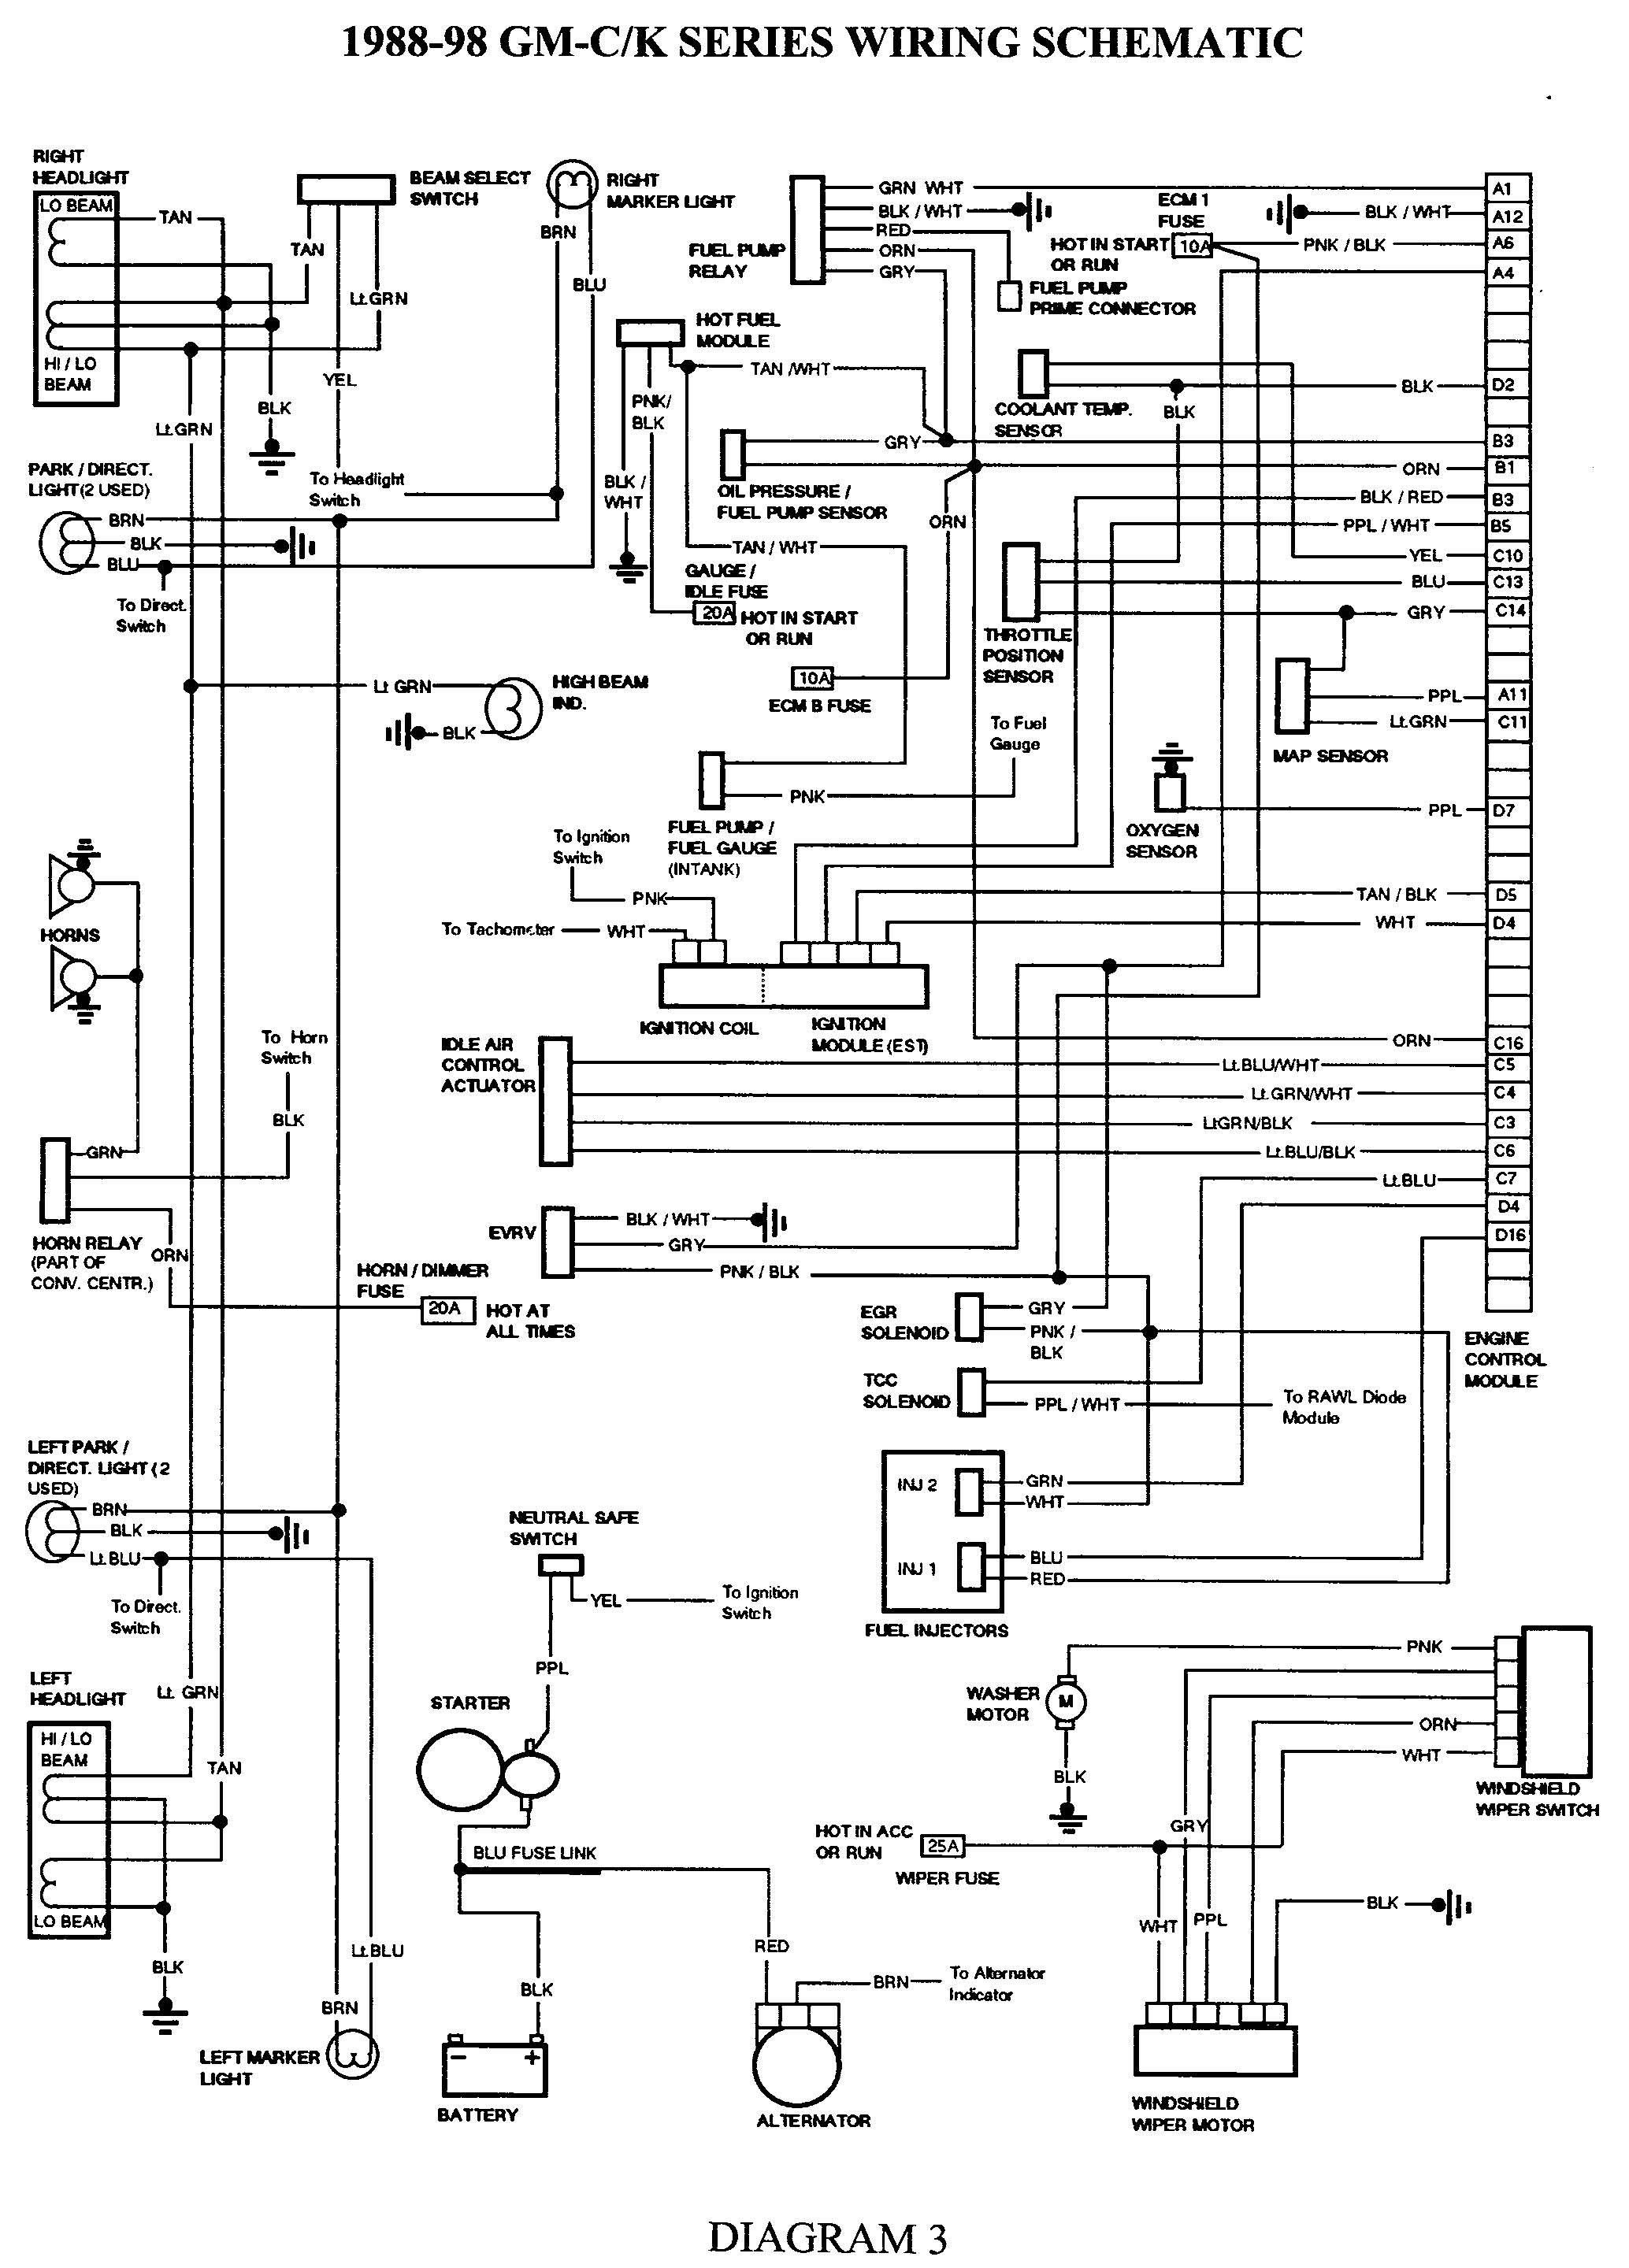 hight resolution of unique wiring schematic legend diagram wiringdiagram diagramming diagramm visuals visualisation